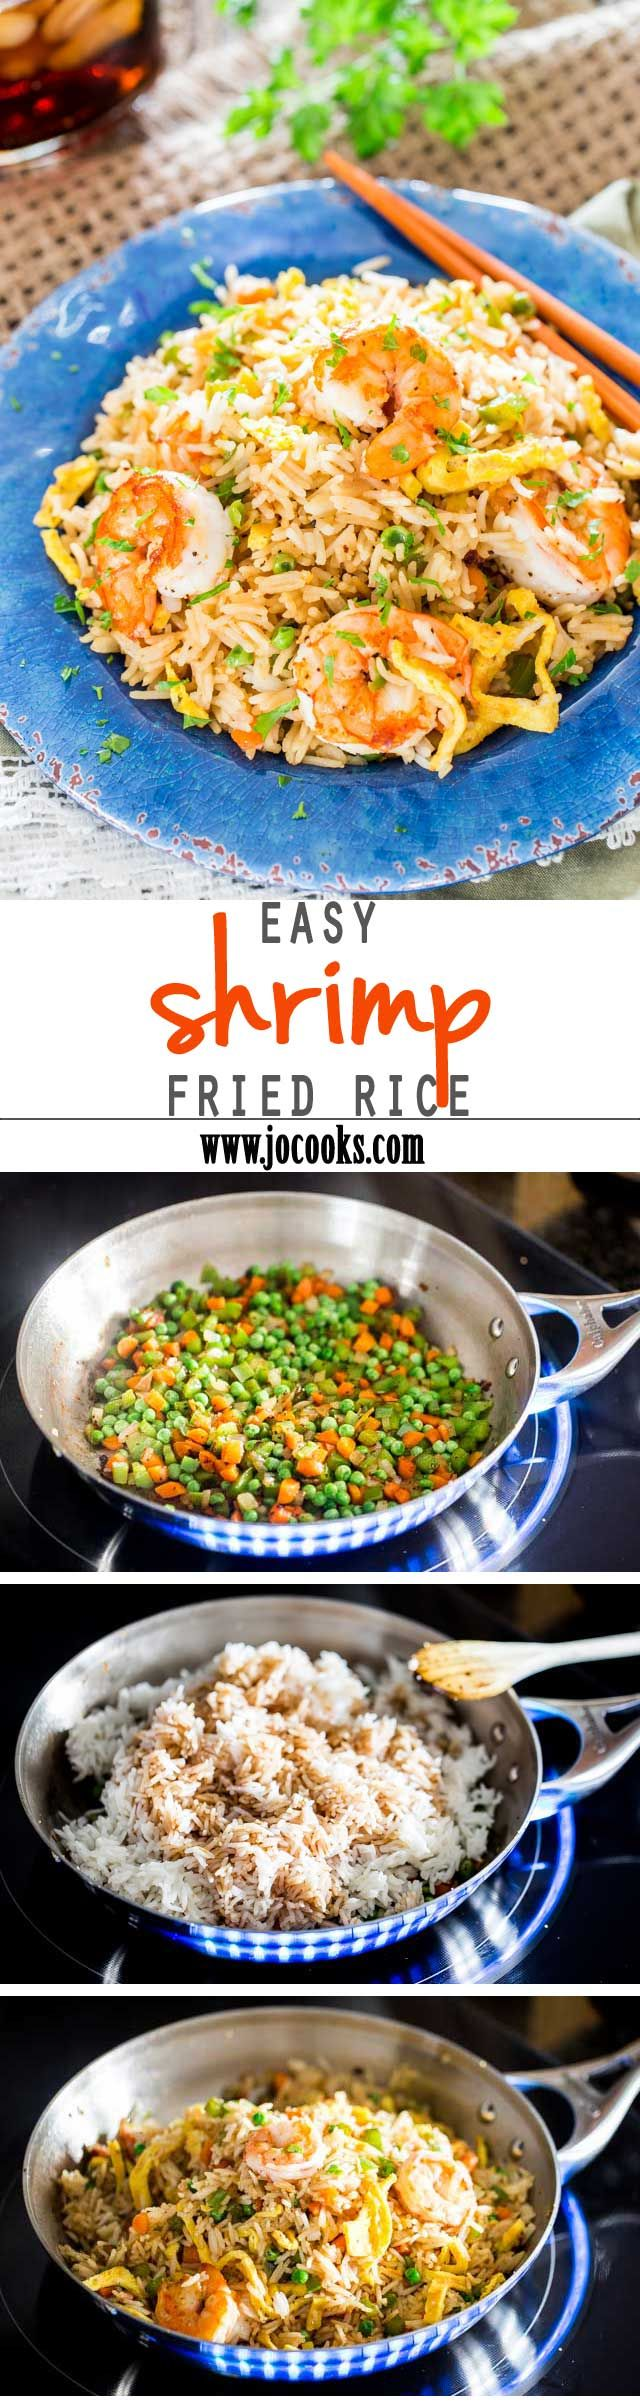 Easy shrimp fried rice - forget take out! Make your own fried rice at home, so much better and healthier. A quick and easy Asian inspired recipe perfect for busy weeknights.